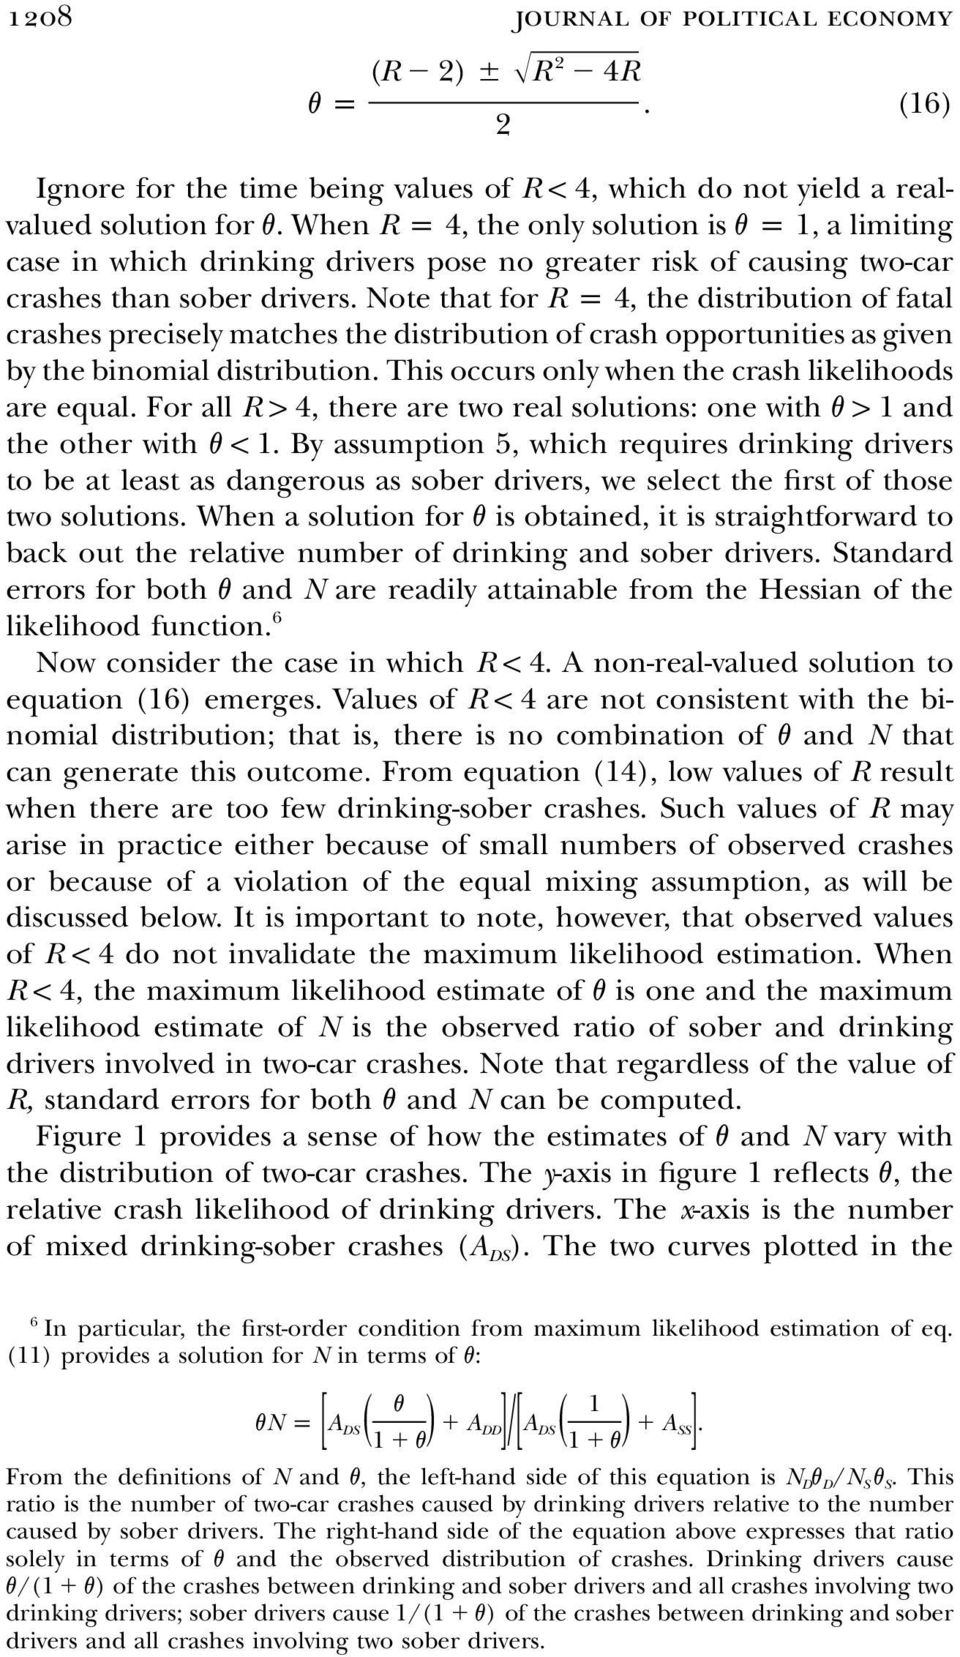 Note that for R p 4, the distribution of fatal crashes precisely matches the distribution of crash opportunities as given by the binomial distribution.